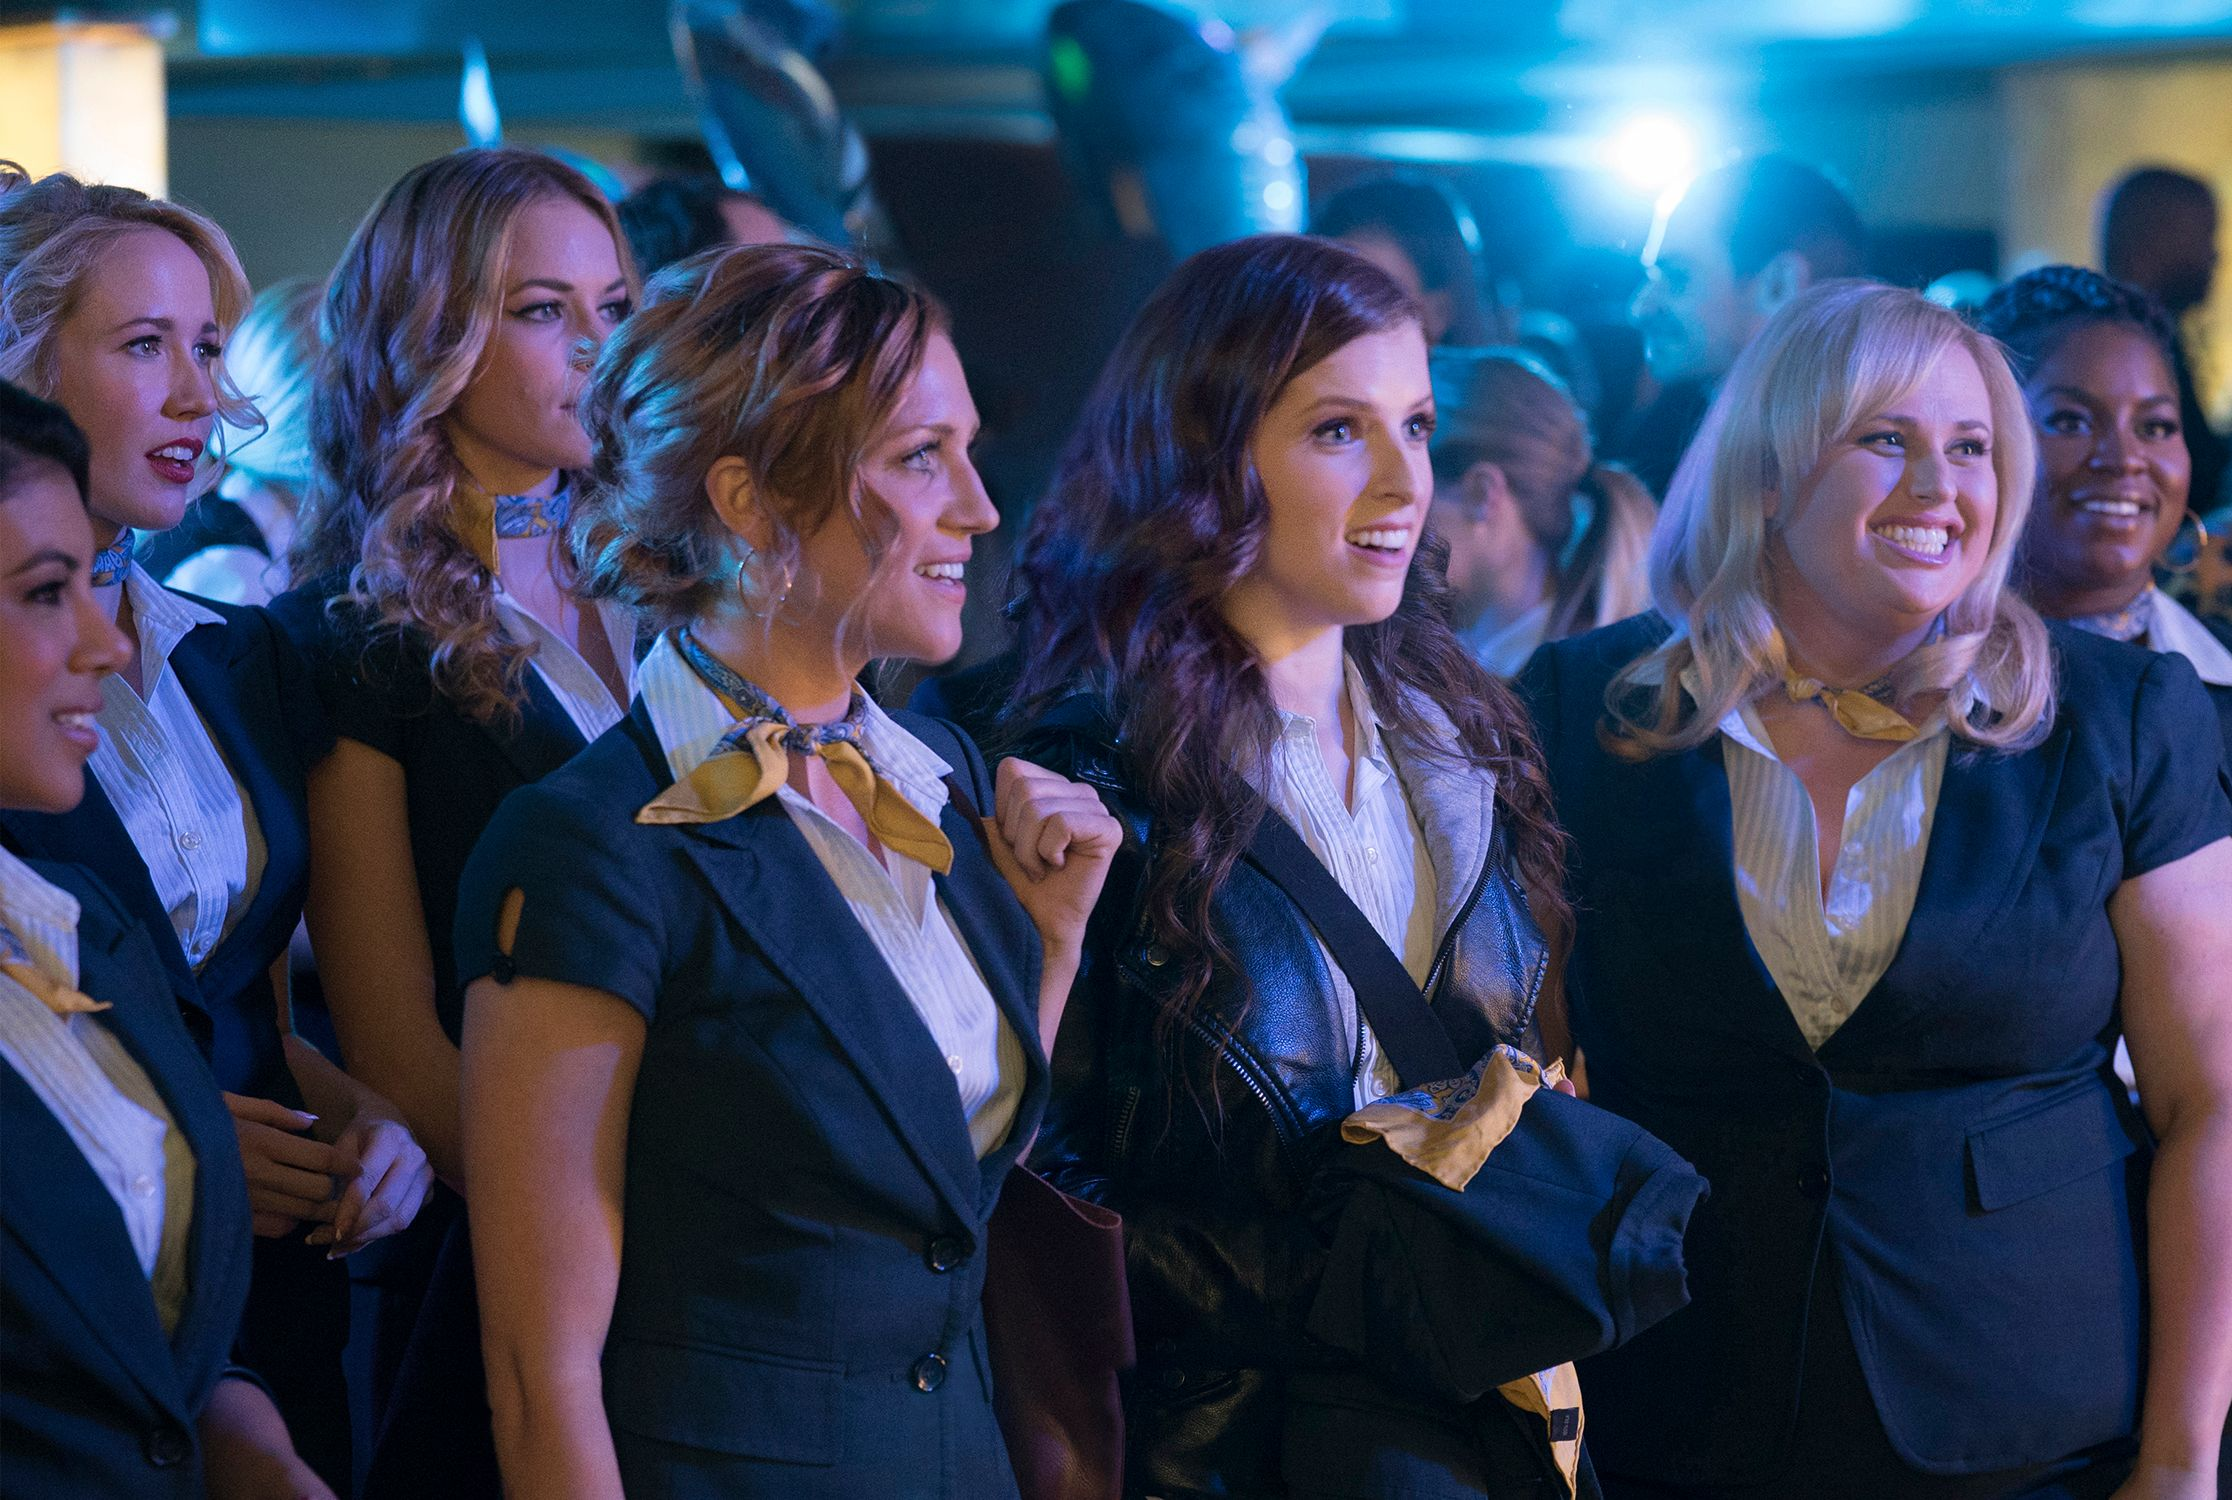 Aca-scuse Me?! A Pitch Perfect Spin Off Could Be Coming